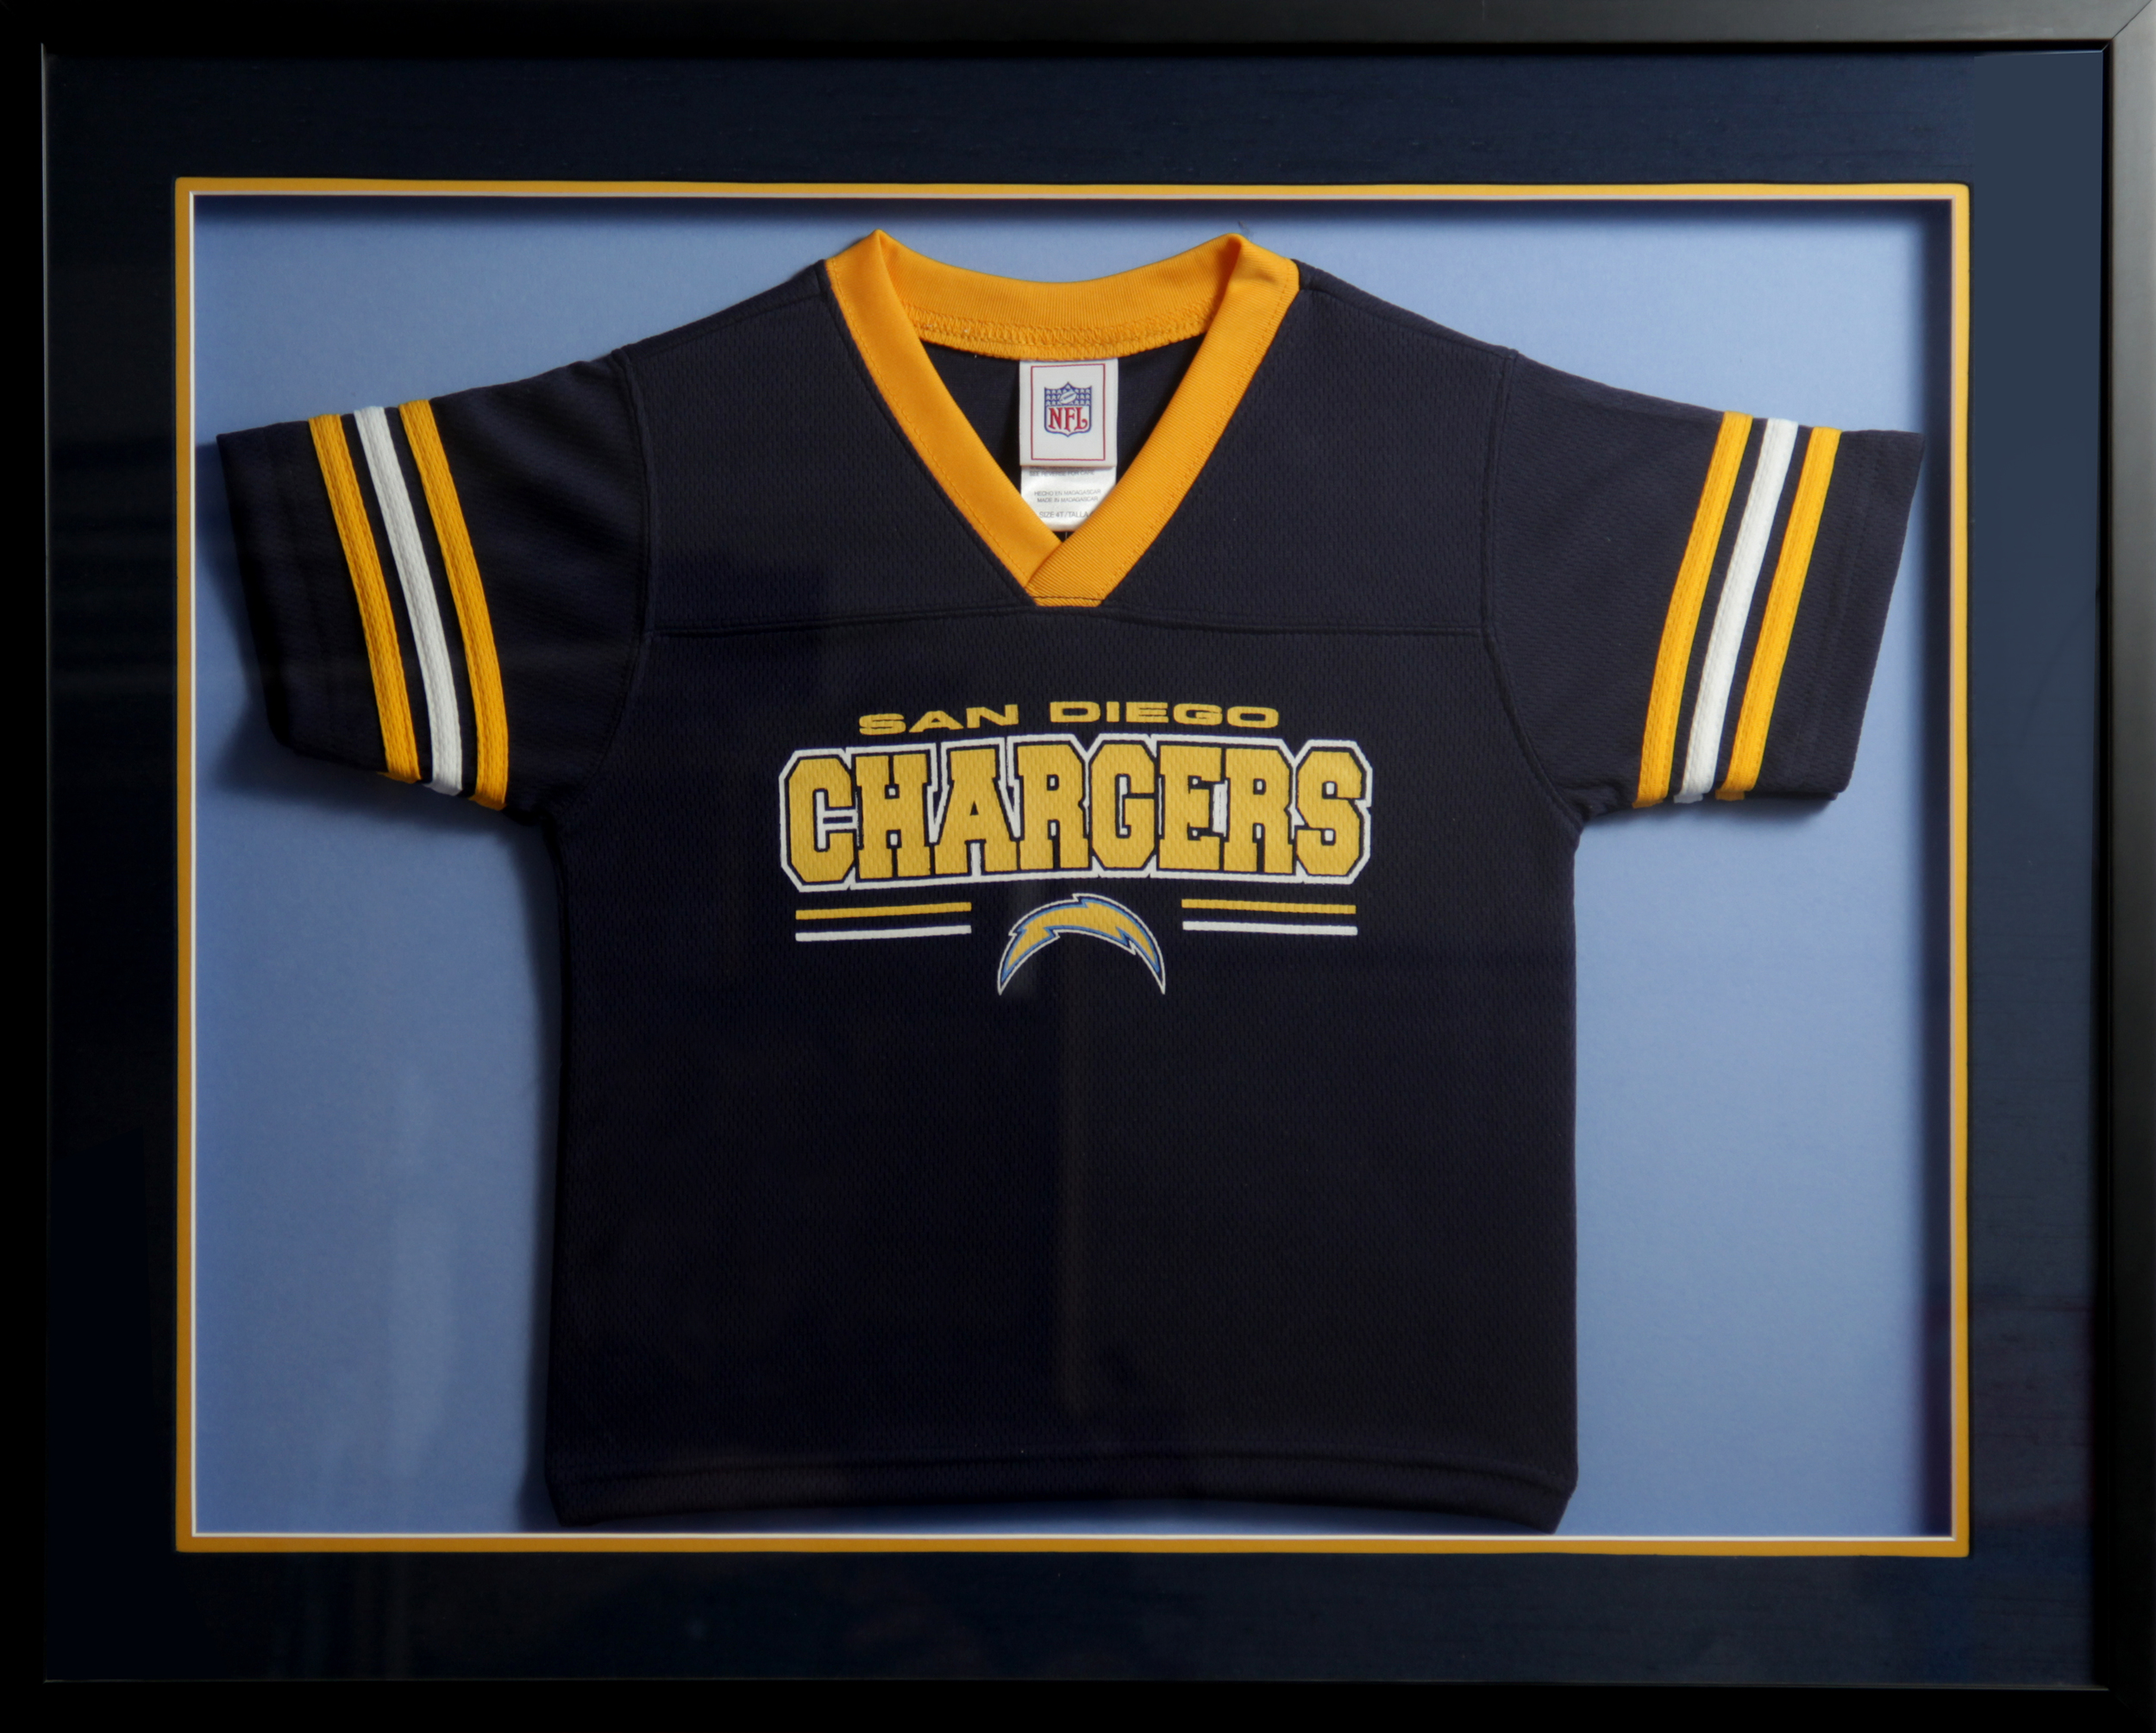 Chargers_Jersey.jpg